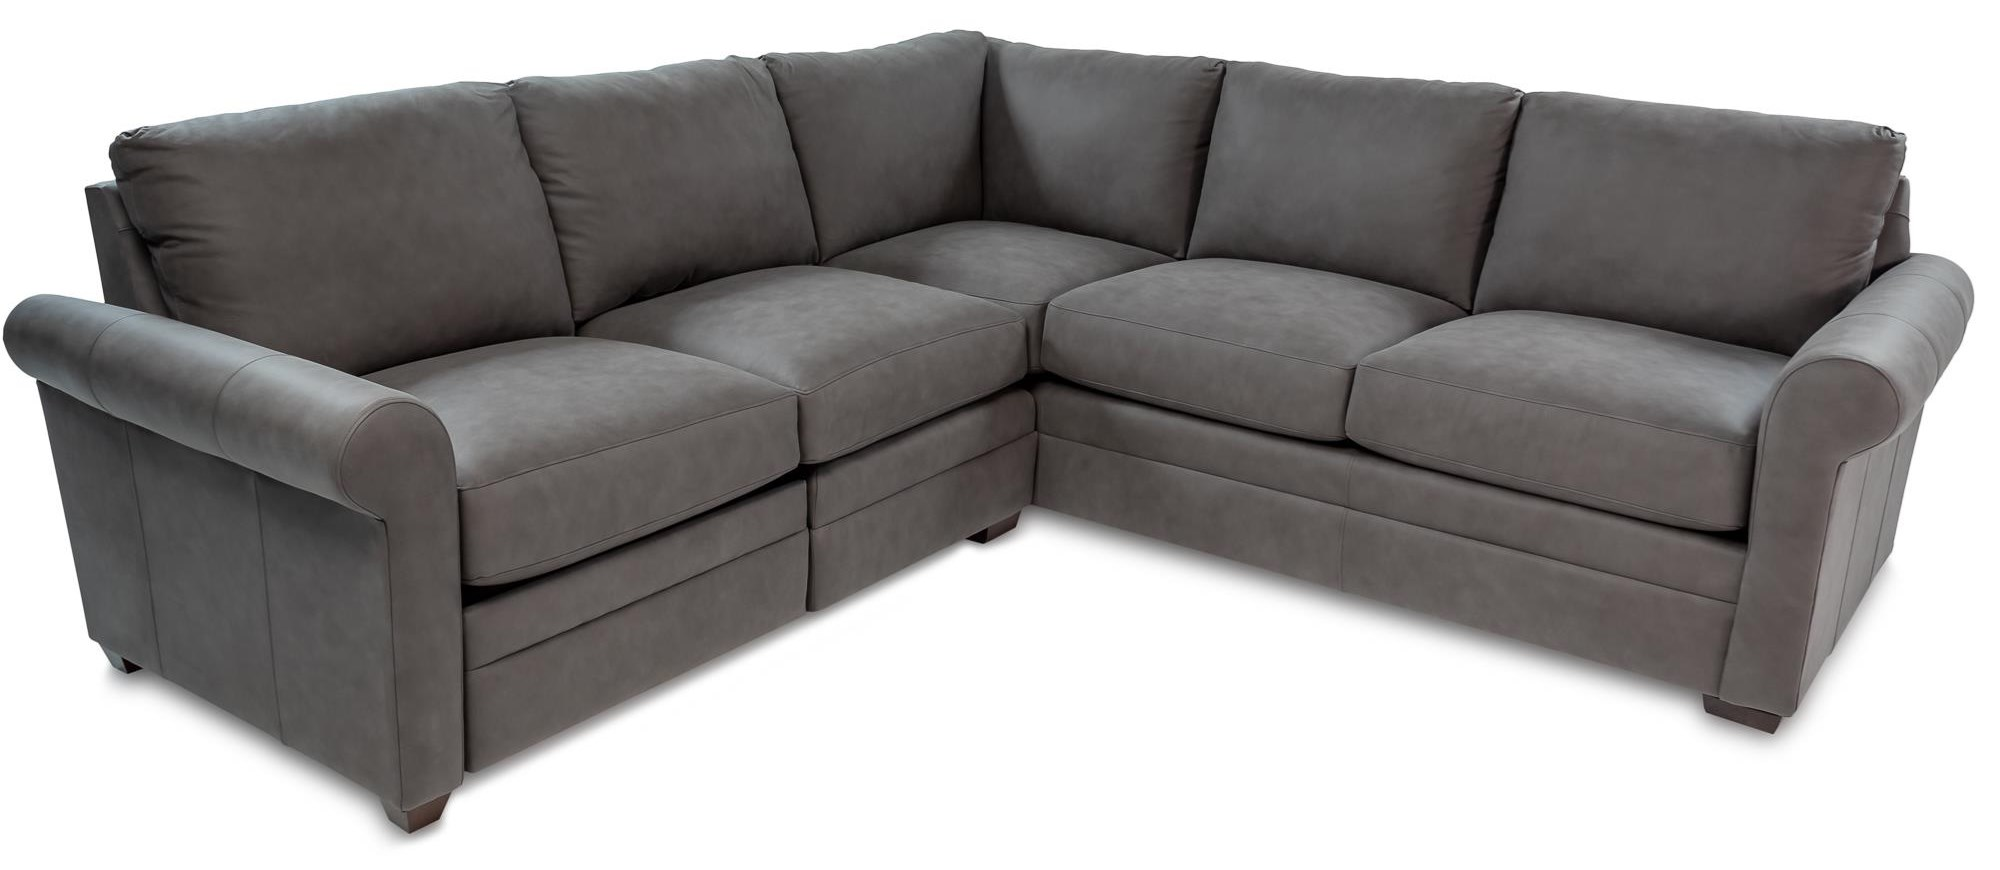 2PC Power Reclining Leather Sectional